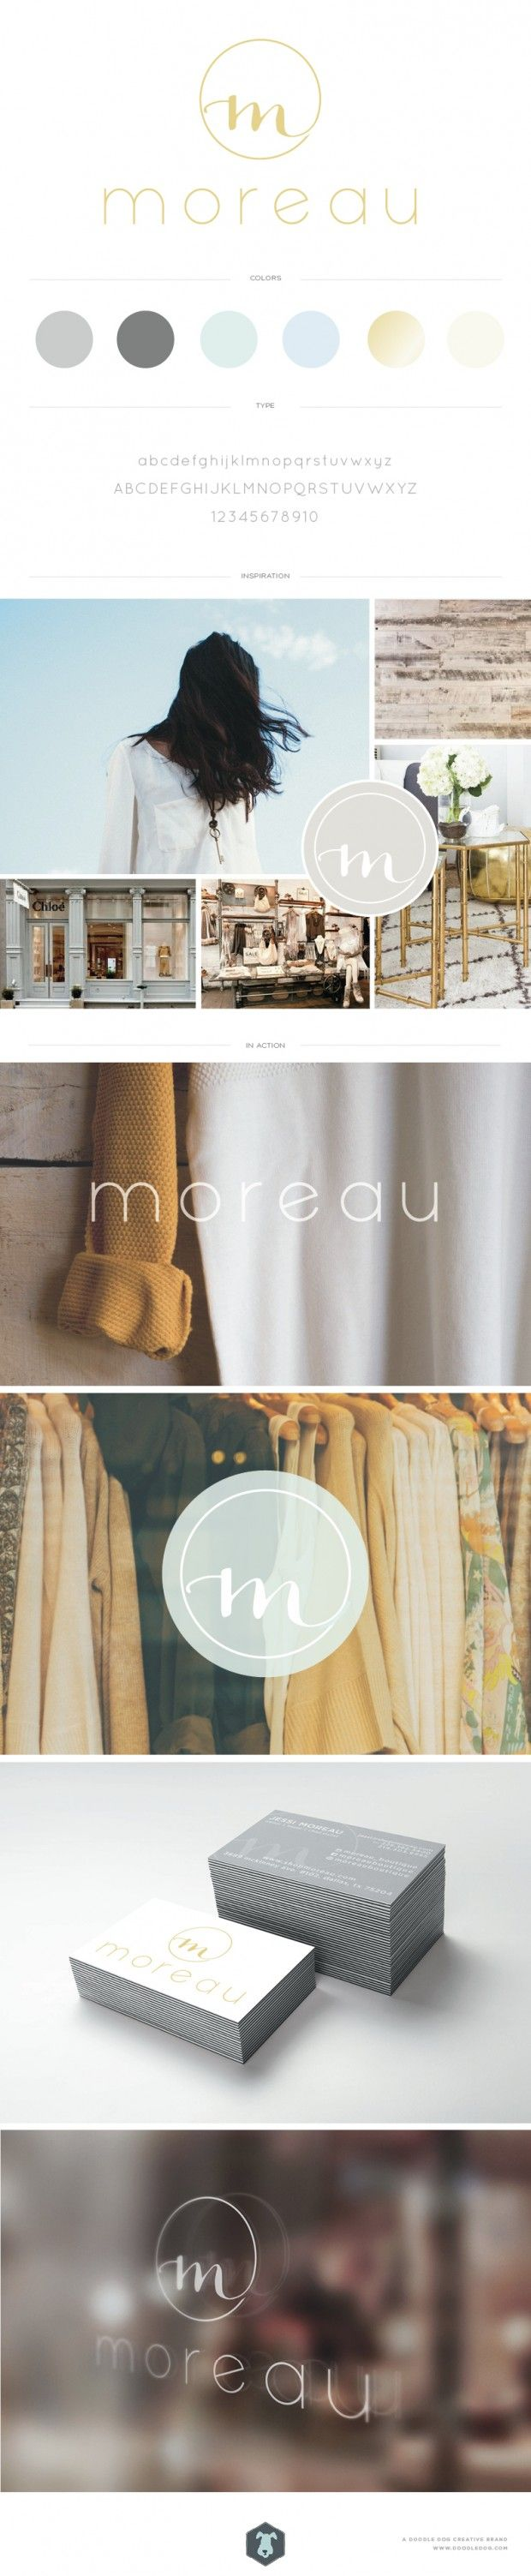 Dallas Clothing Boutique Brand Identity – Moreau Boutique — by Doodle Dog Creative. #boutique #logo #design #designer. See more at www.doodledog.com